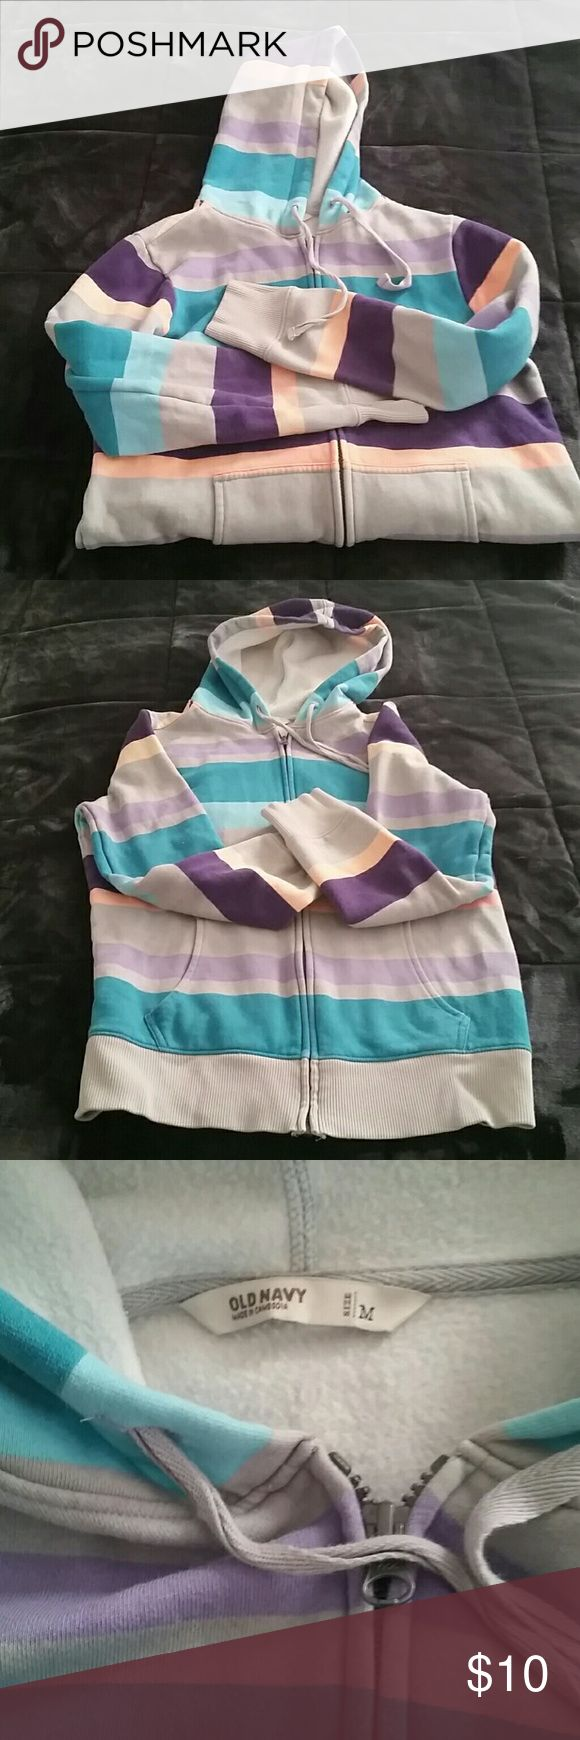 Retro striped hoodie Medium Old Navy hooded zipup sweatshirt featuring wide stripes of gray, aqua, salmon, and lilac.   Used, good condition Old Navy Tops Sweatshirts & Hoodies